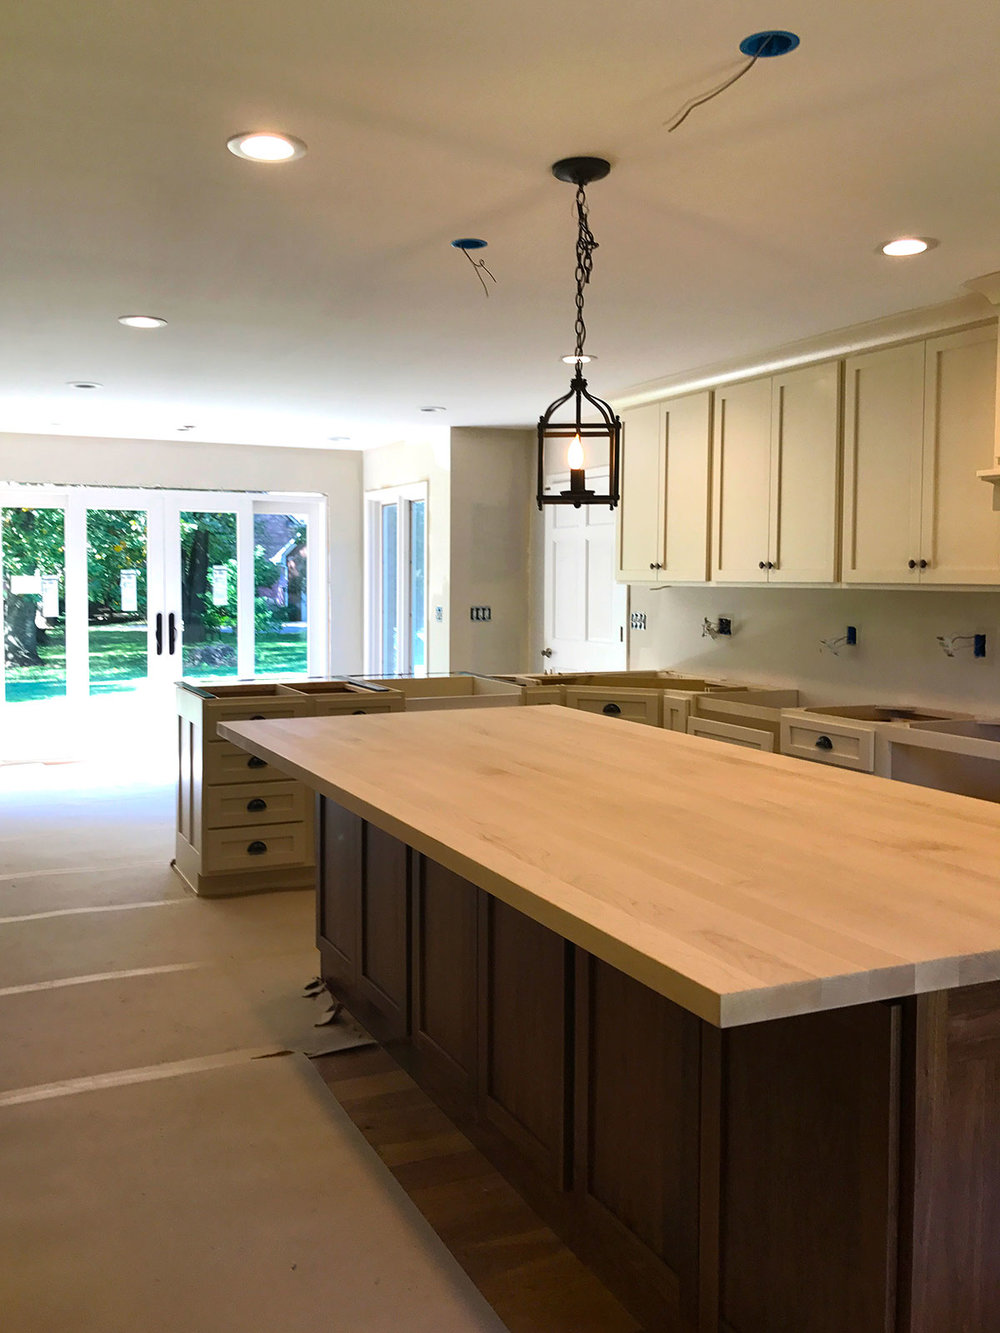 Expertly Crafted Kitchen - Amish-Built Cabinetry